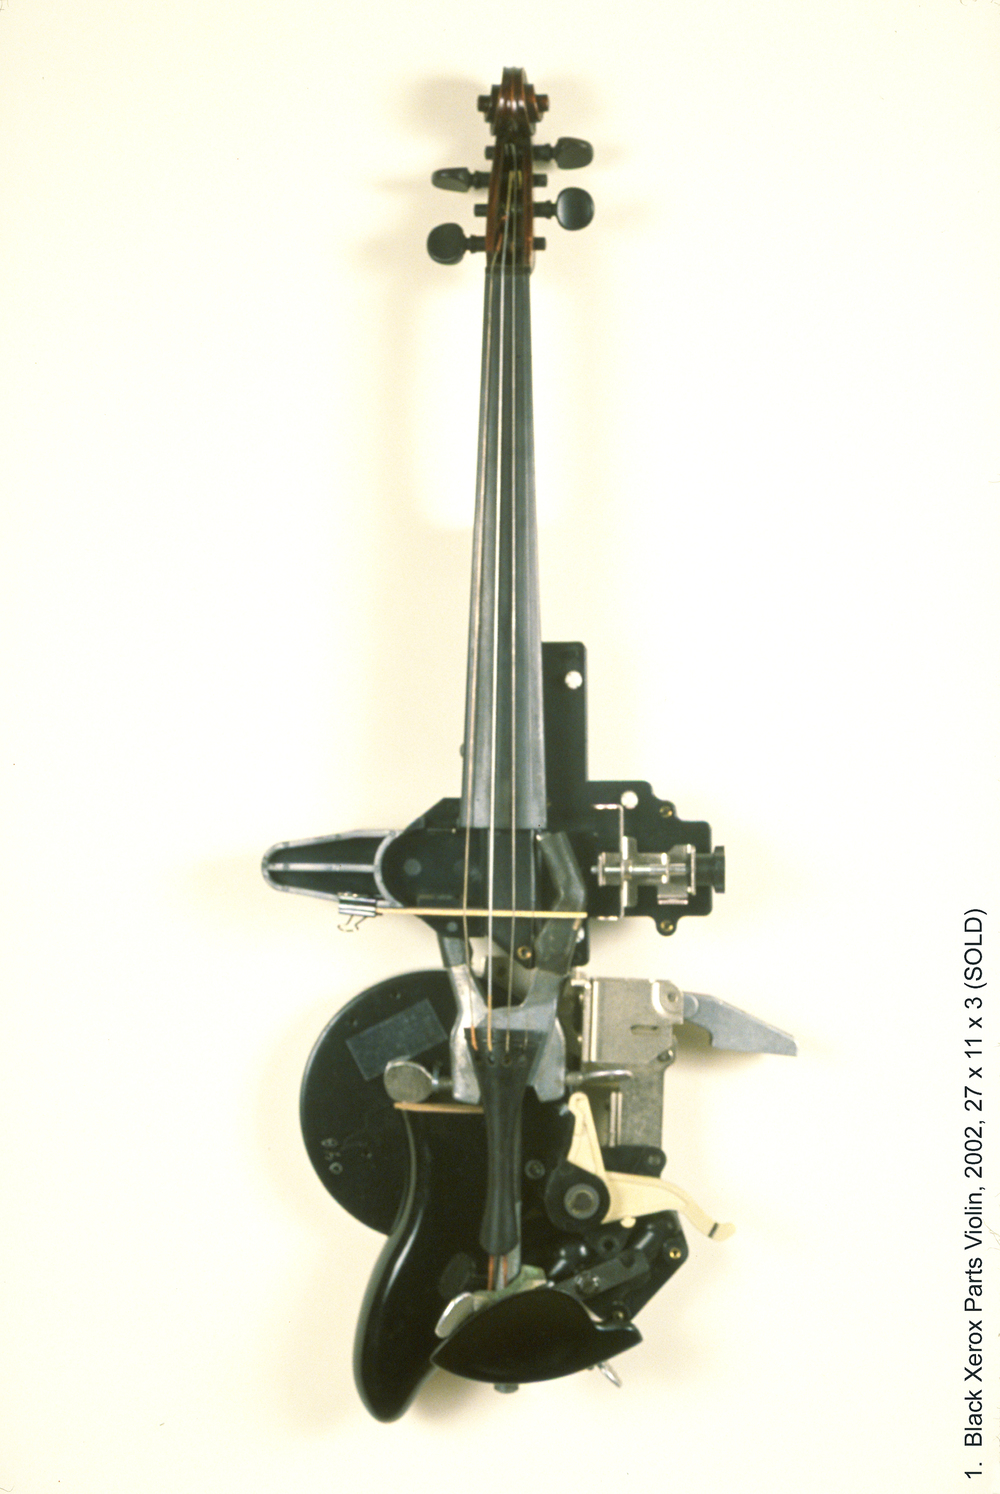 1 Black Xerpx Parts Violin wt.jpg